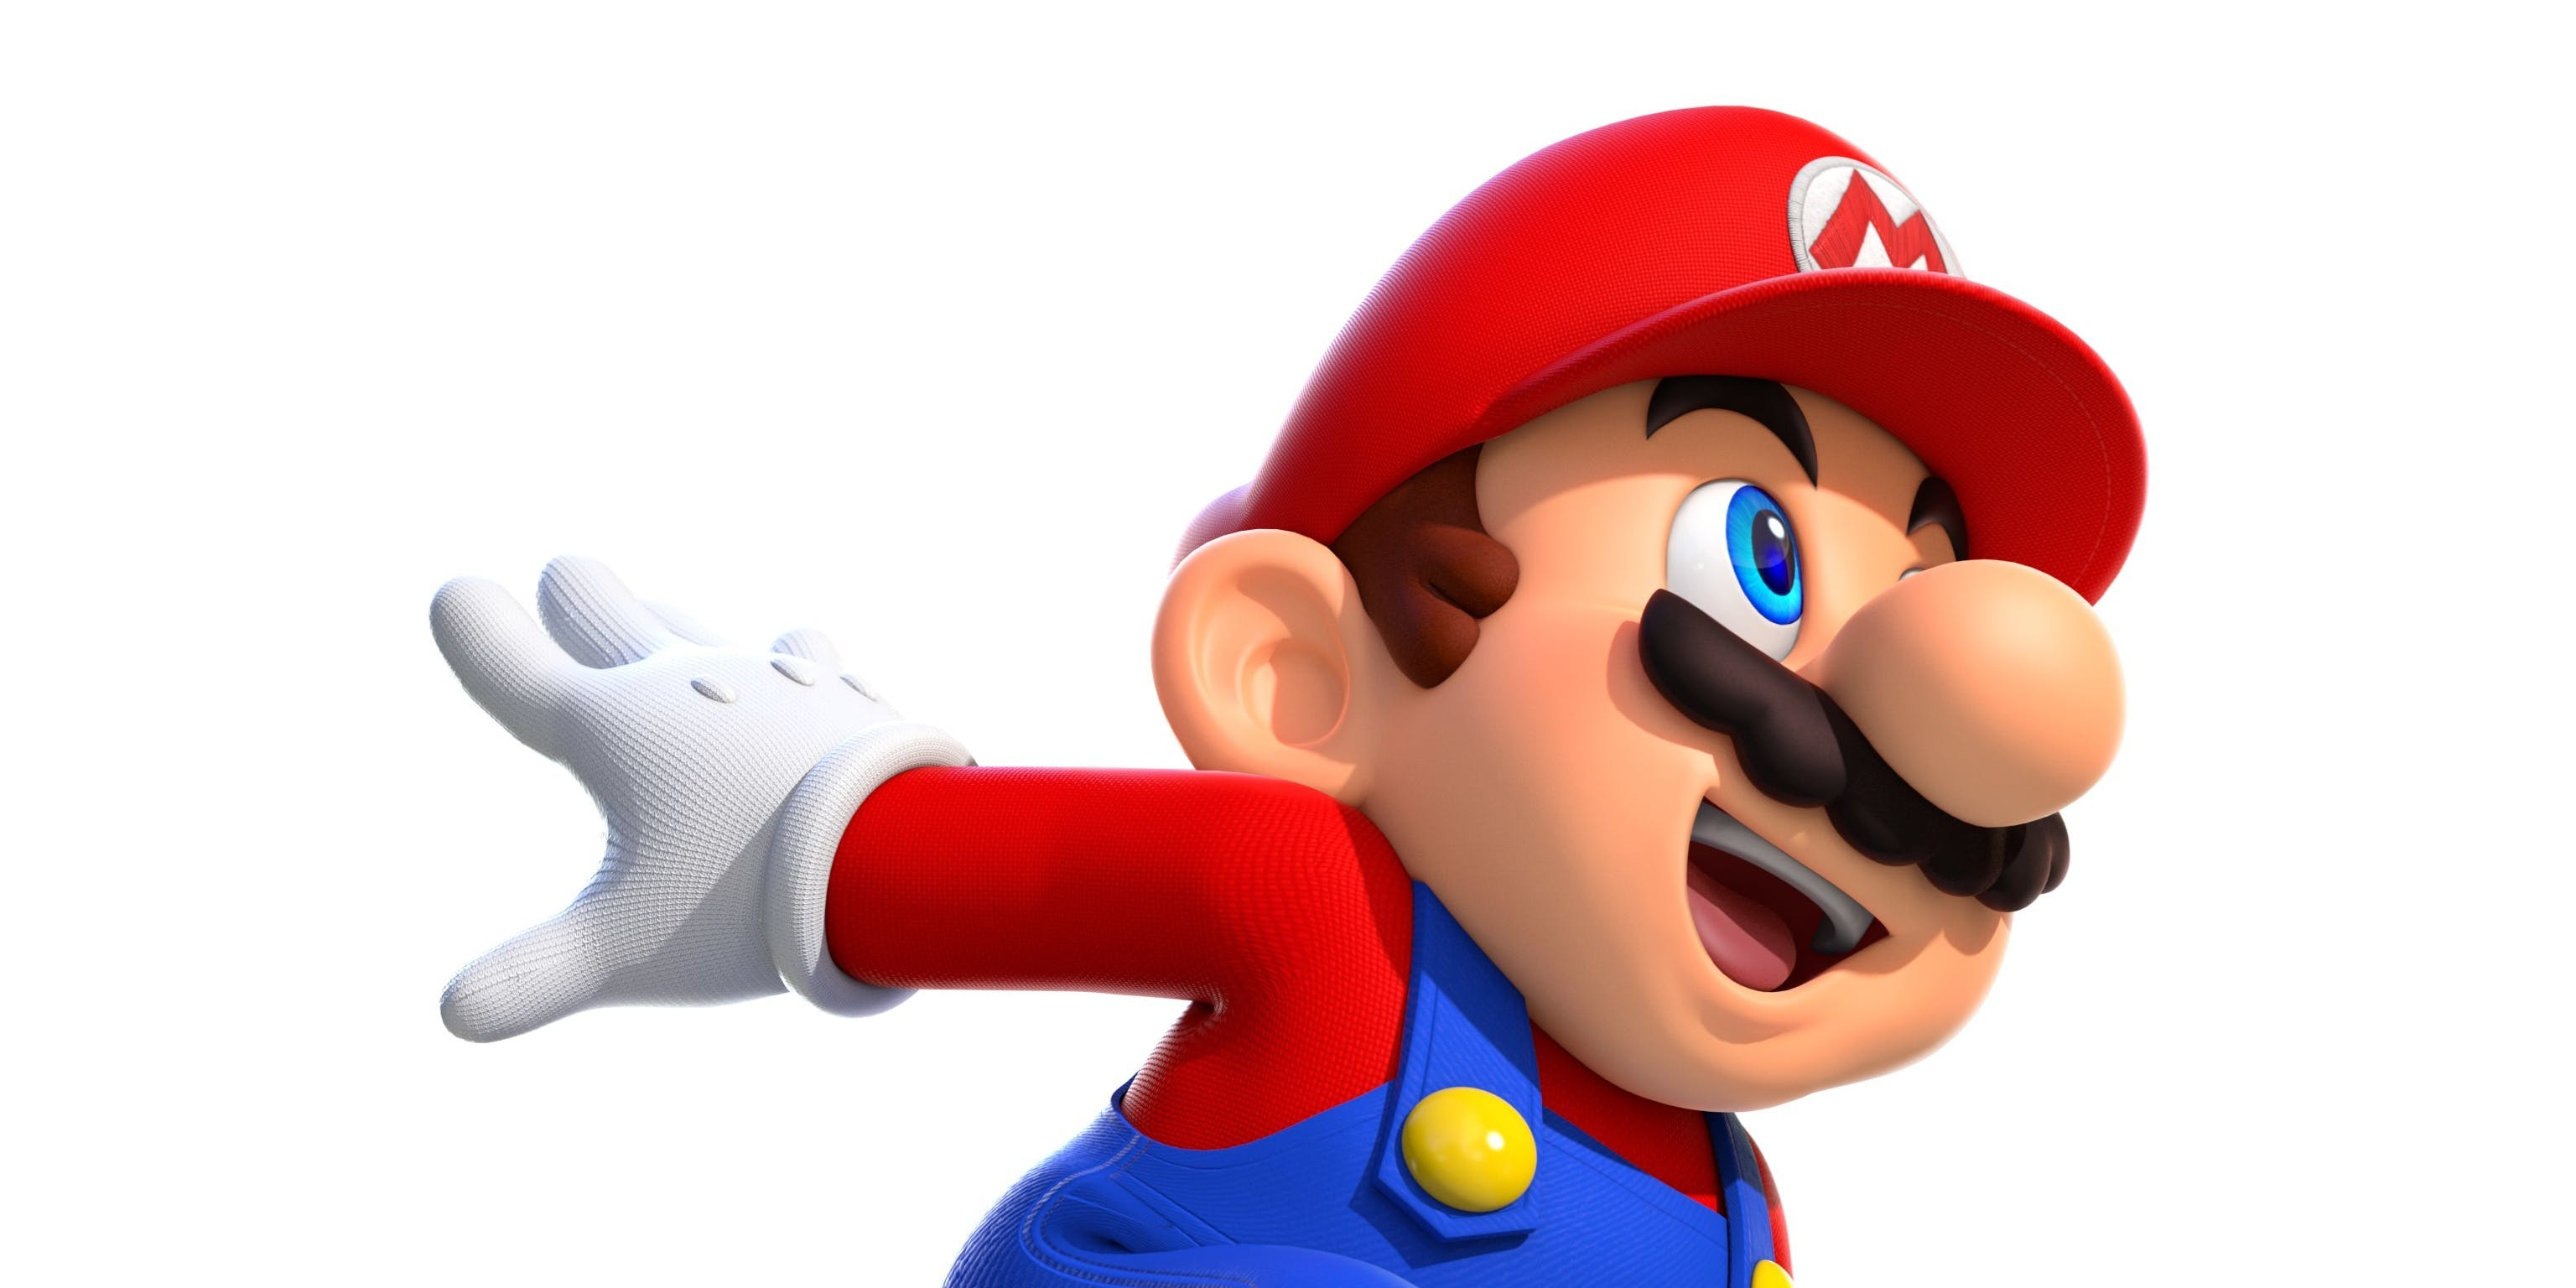 This Mario is definitely super, but it's unclear whether he's running.